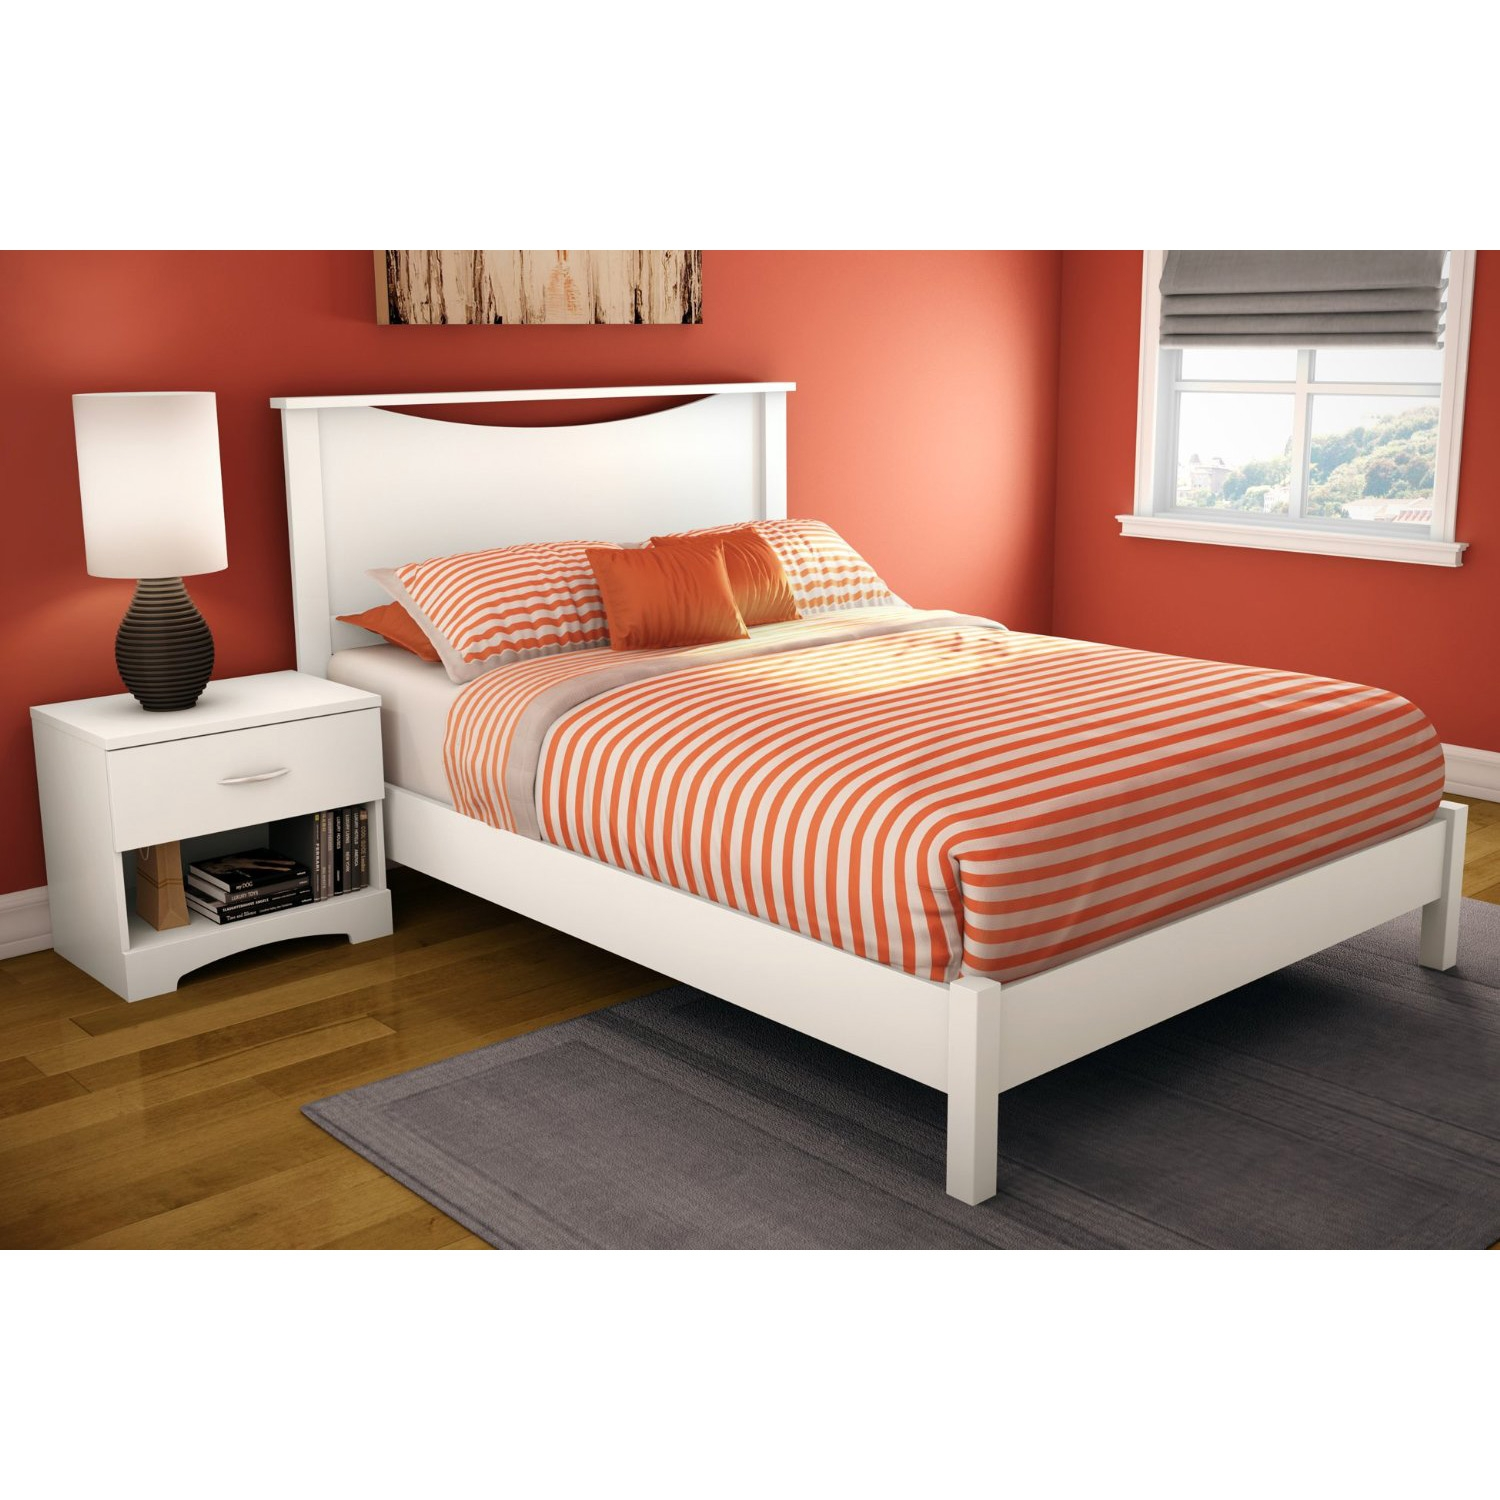 full size simple platform bed in white finish  modern design  - retail price